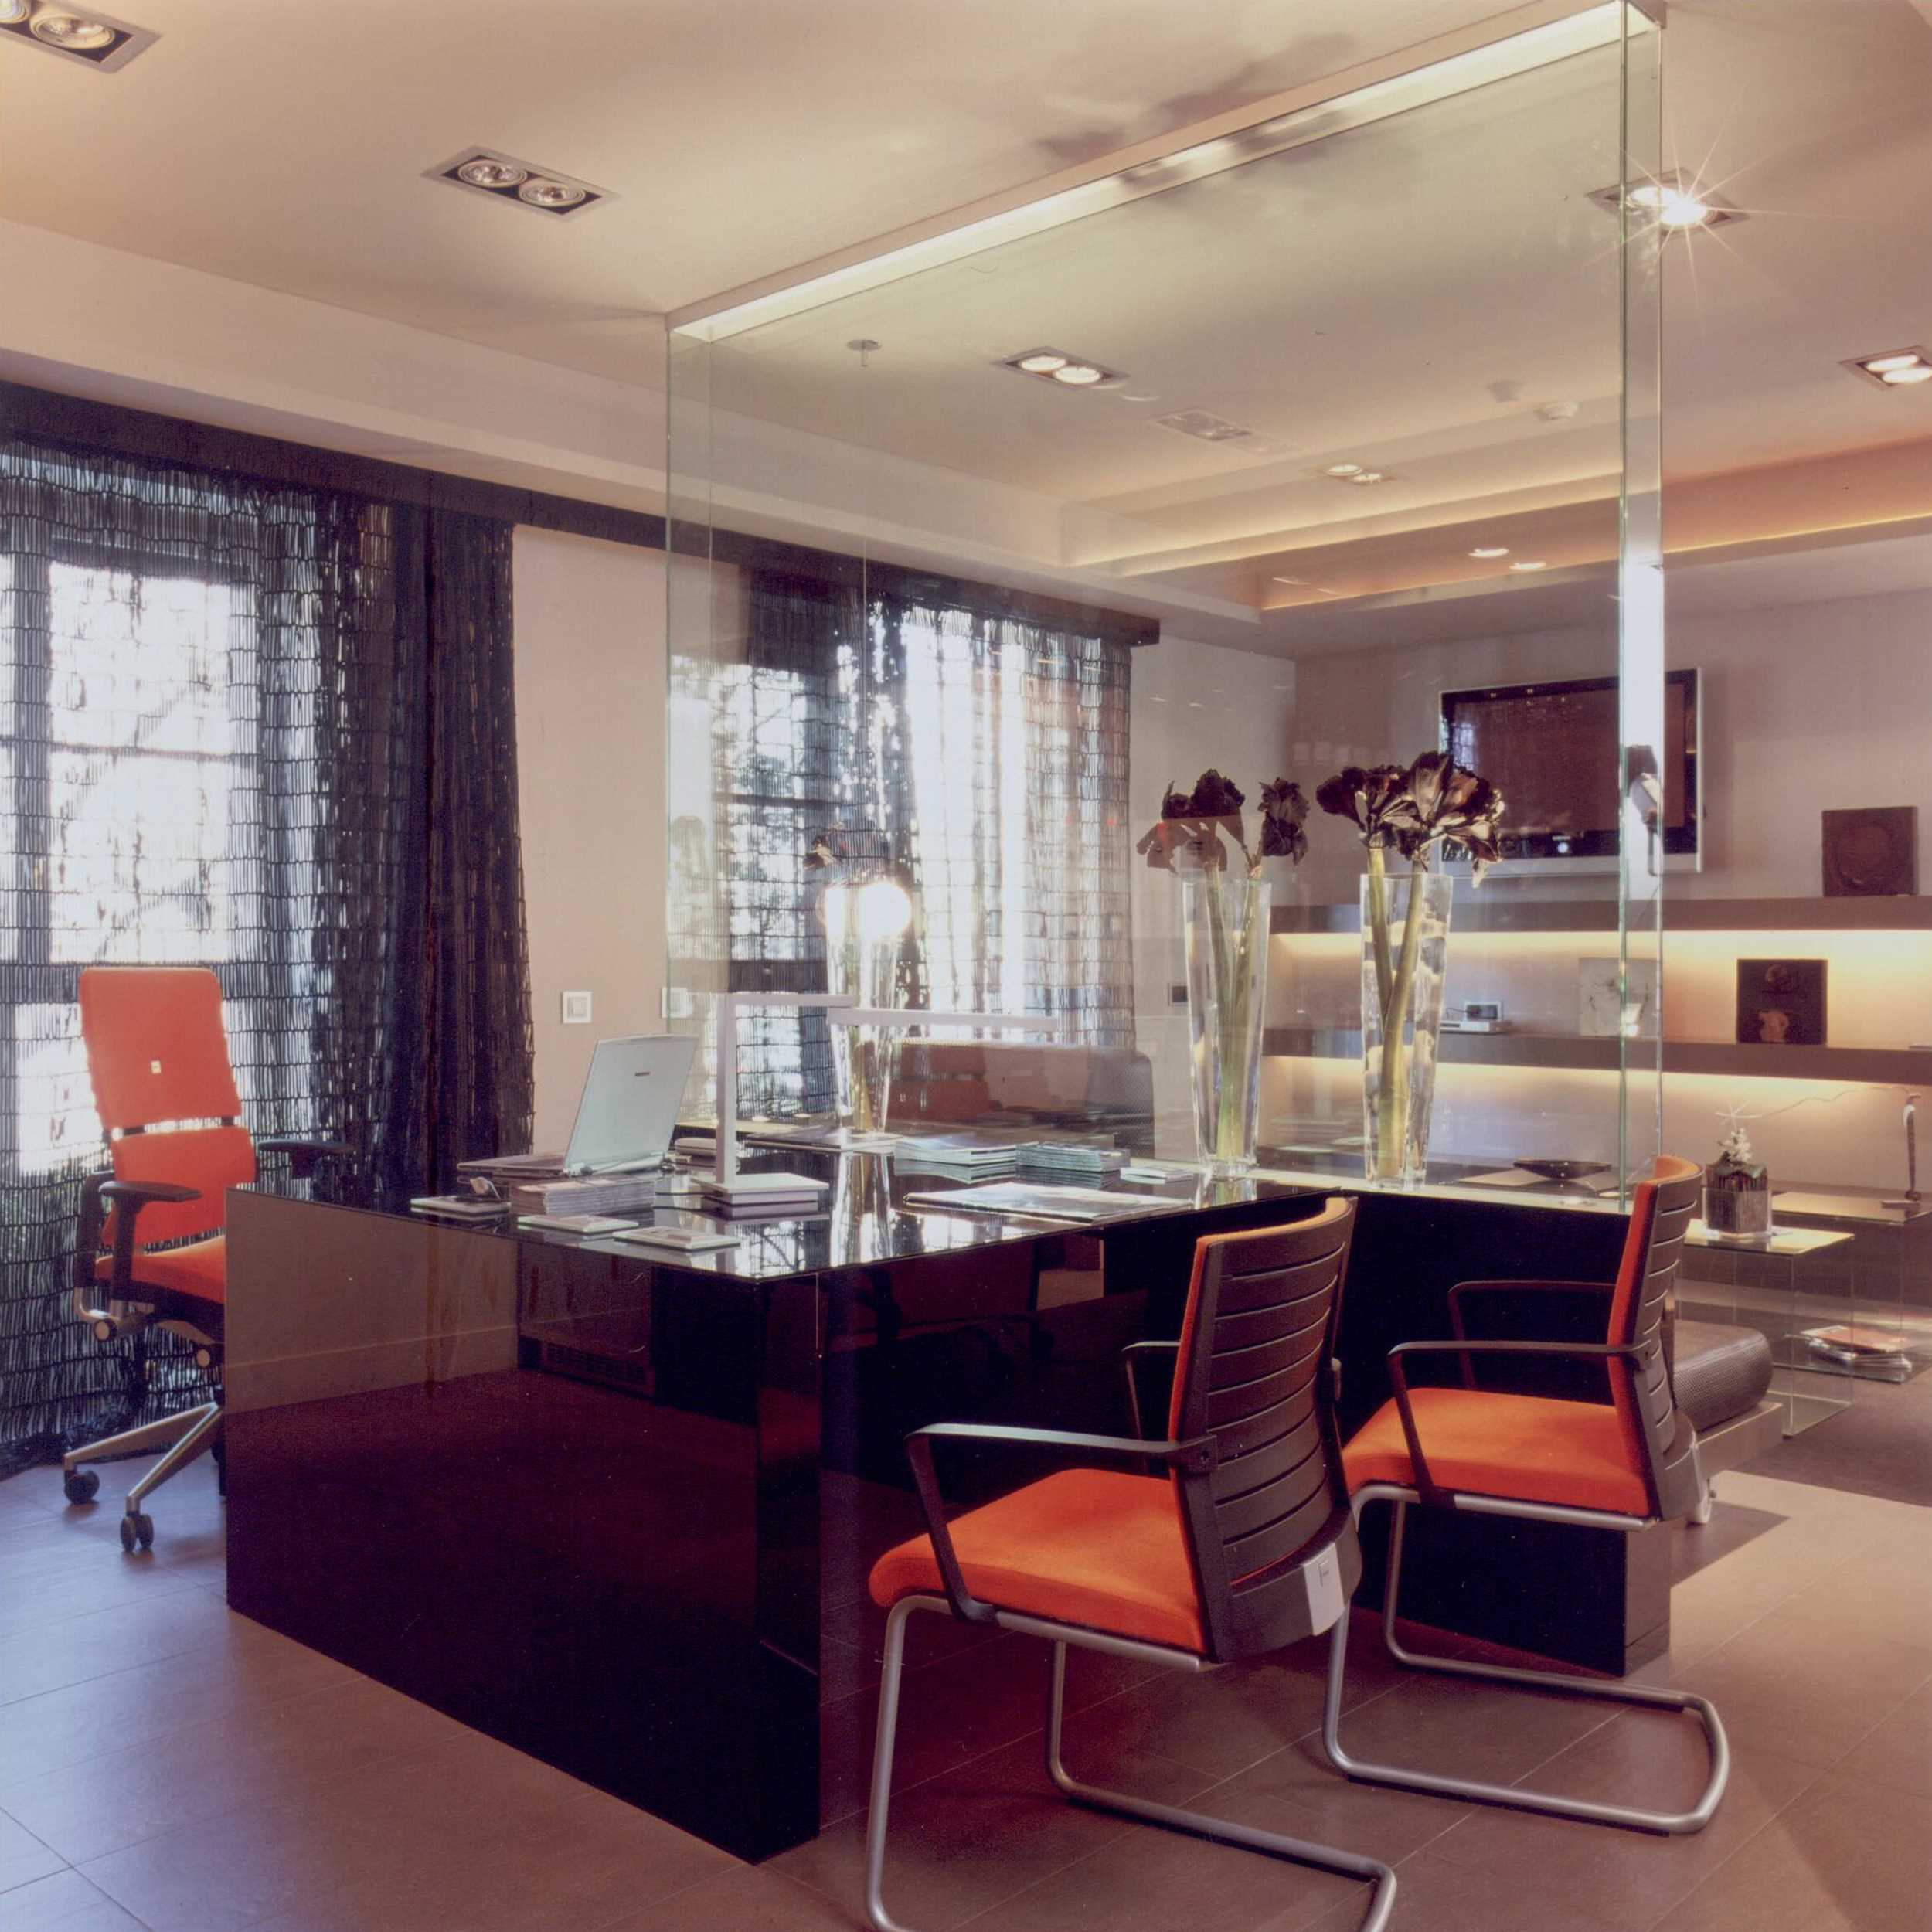 Office Interior Design Project In Casadecor To Test New Exclusive Furniture For Offices Large Companies Worldwide Using The Crystal Break With